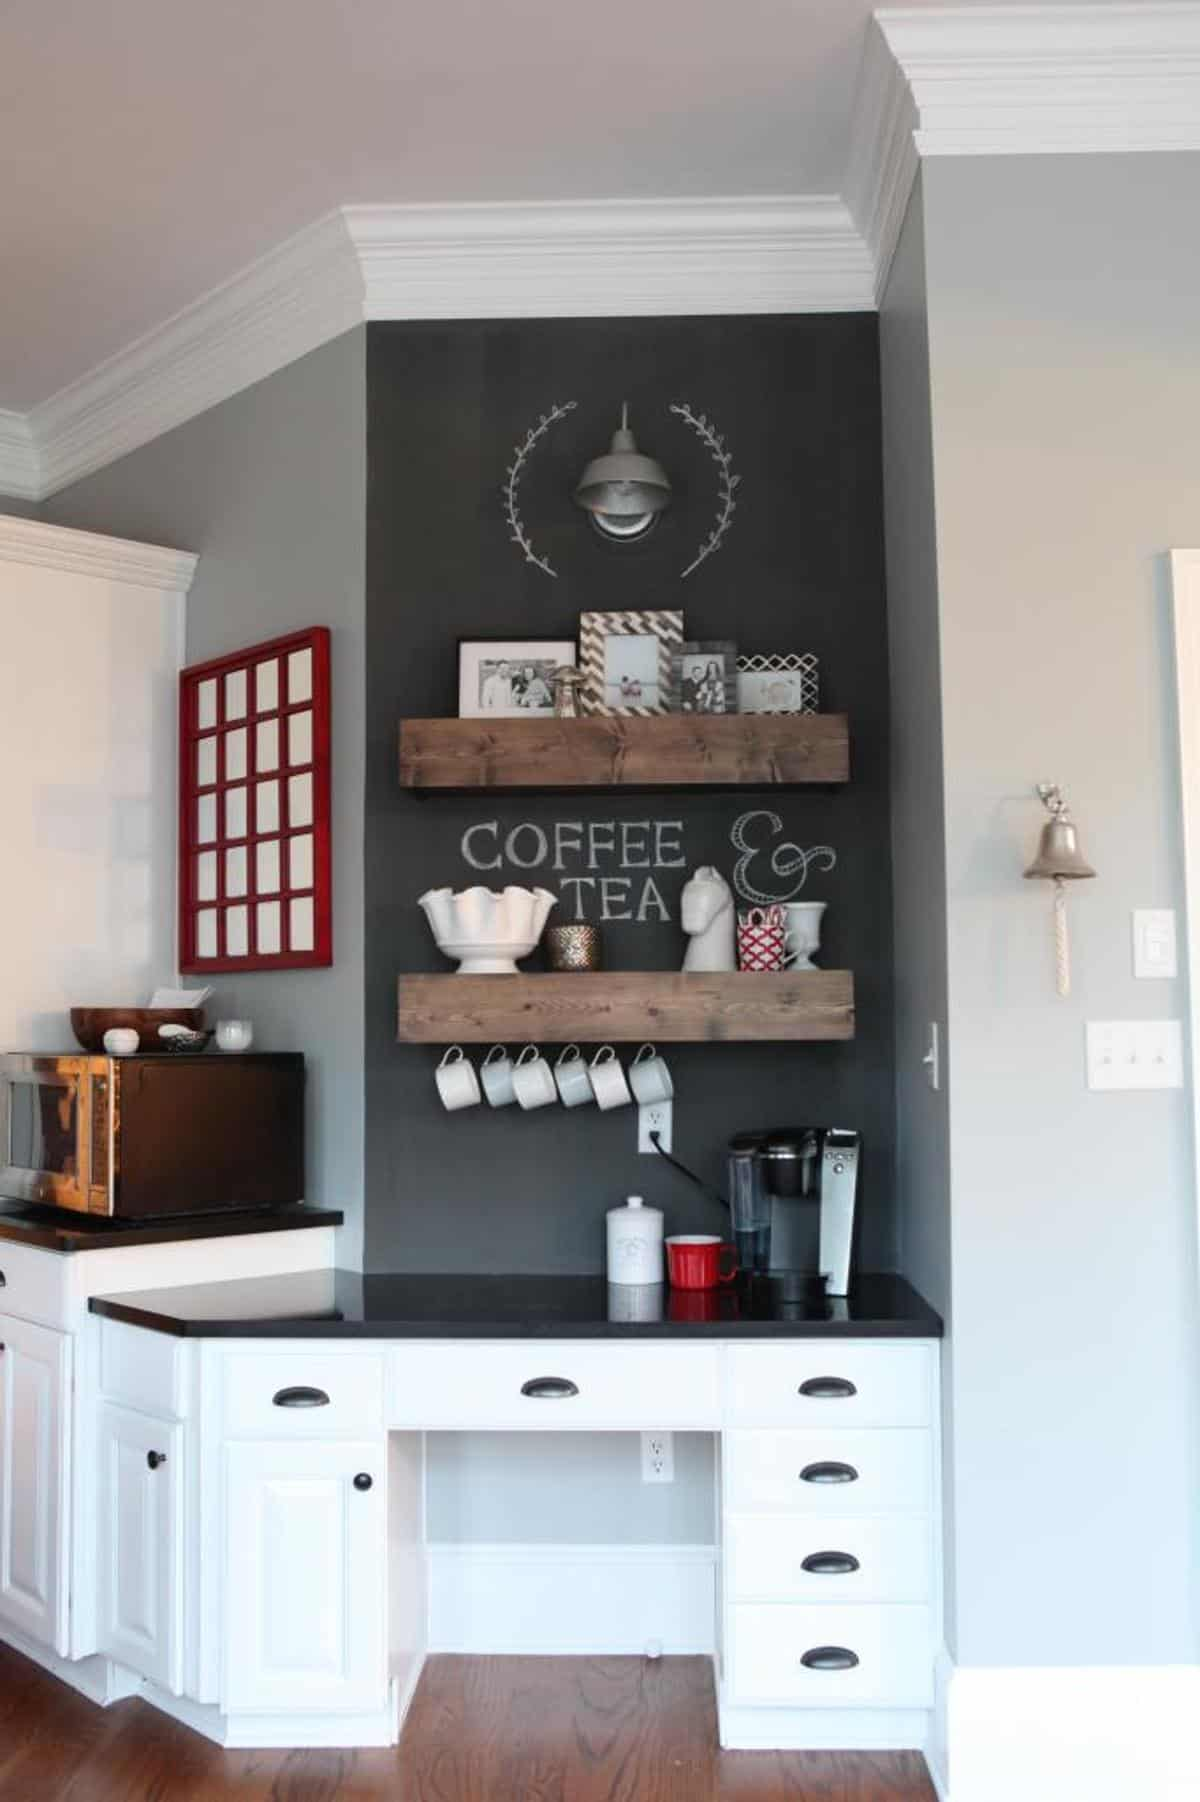 20 Coffee Station Ideas to Make Caffeine Addicts Happy on coffee house kitchen design ideas, kitchen fridge ideas, kitchen coffee center ideas, kitchen decor coffee house, coffee themed kitchen ideas, coffee bar ideas, kitchen wine station, kitchen couch ideas, kitchen buffet ideas, kitchen bookshelf ideas, kitchen baking station, kitchen library ideas, kitchen beverage station, martha stewart kitchen ideas, country living 500 kitchen ideas, great kitchen ideas, kitchen bathroom ideas, kitchen designs country living, coffee break set up ideas, kitchen cabinets,